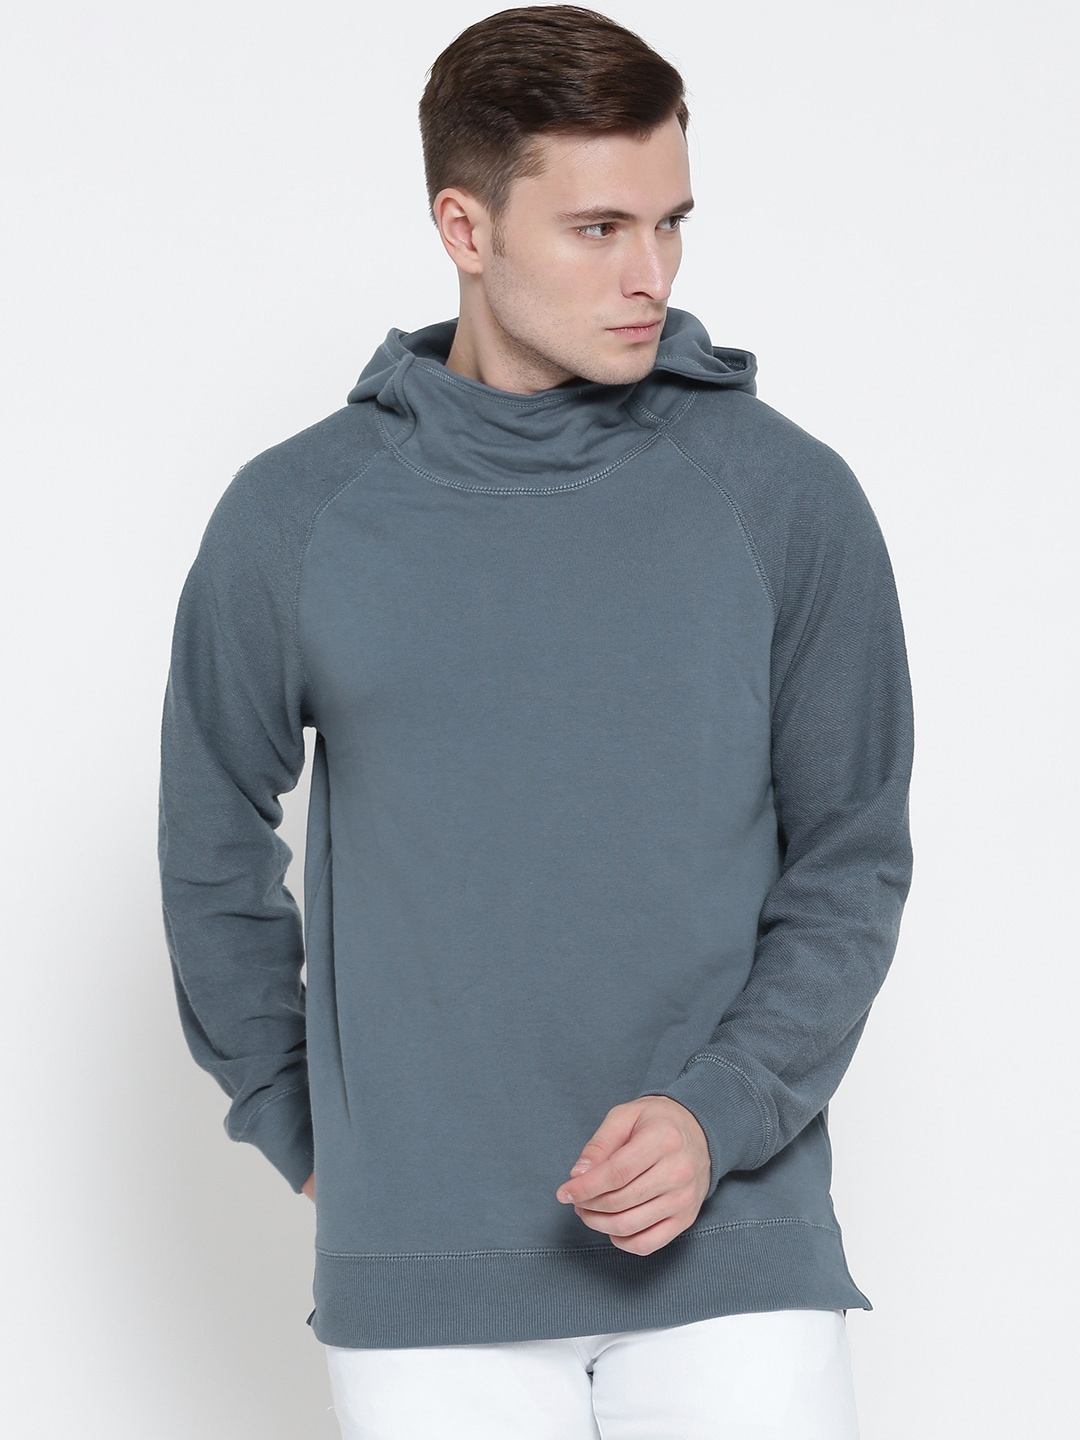 FOREVER 21 Men Blue Solid Hooded Sweatshirt image